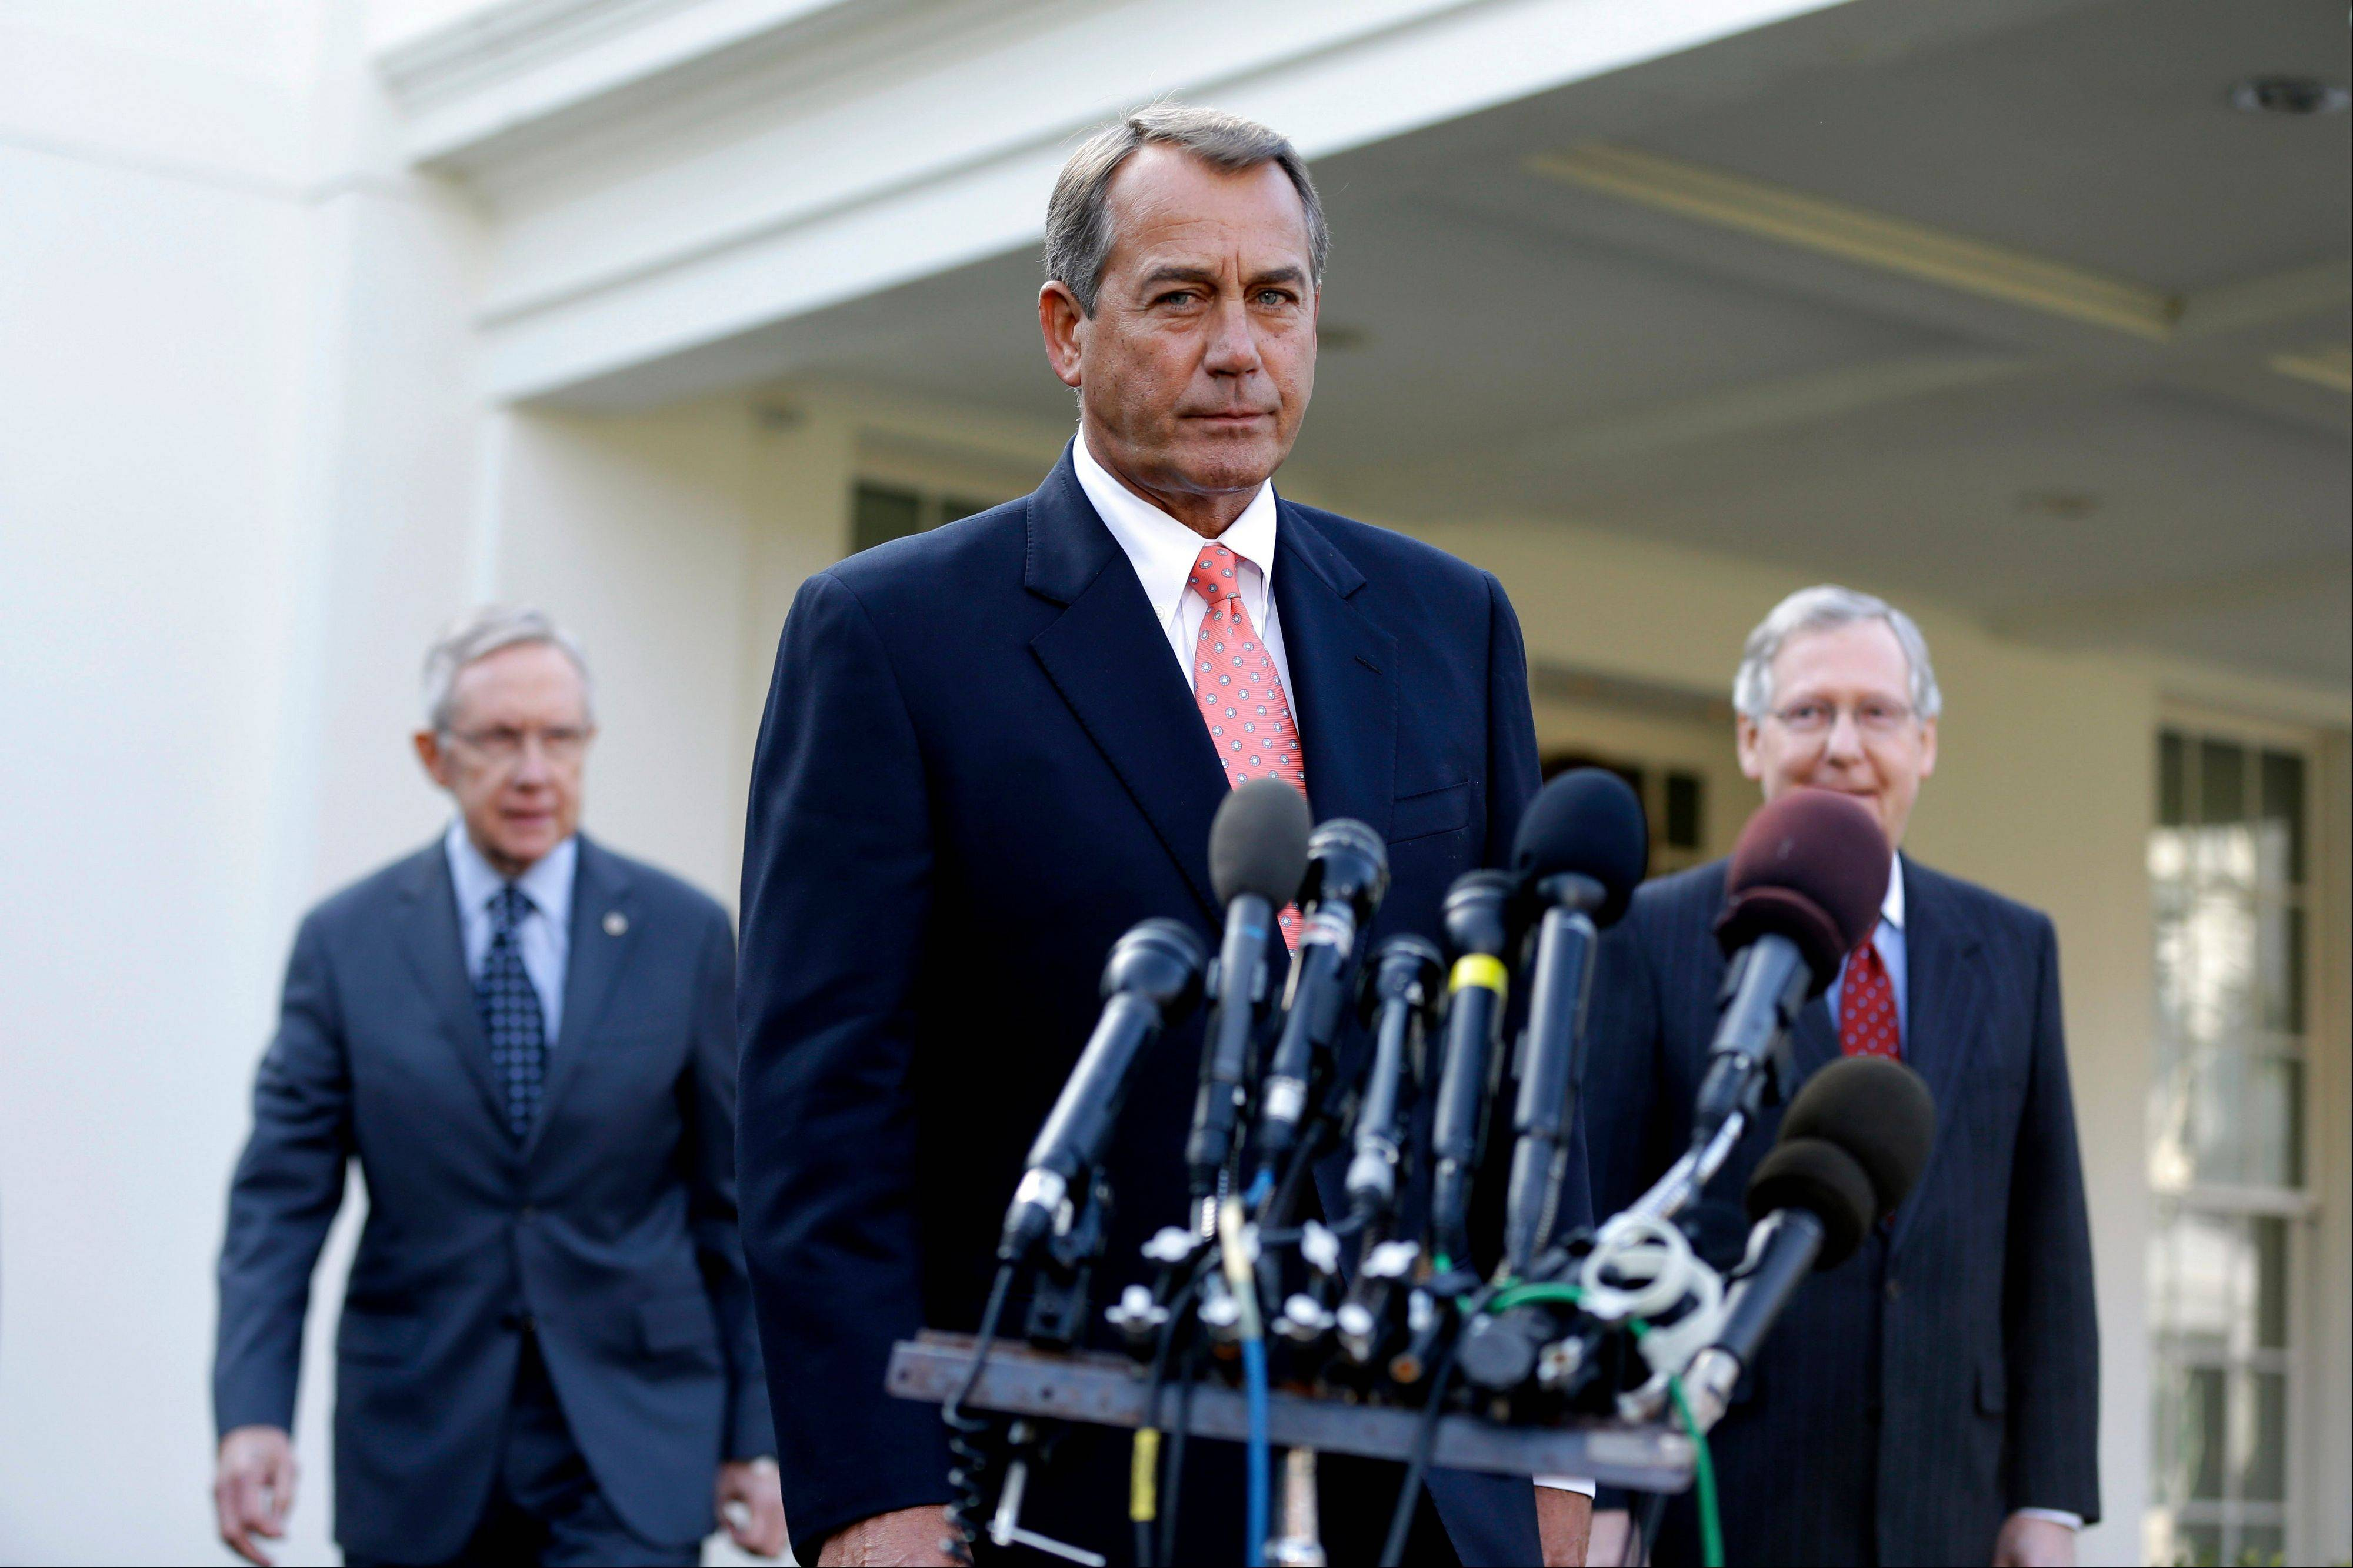 House Speaker John Boehner of Ohio, center, followed by Senate Majority Leader Harry Reid of Nev., left, and Senate Minority Leader Mitch McConnell of Ky., approaches the the microphones Friday outside the White House.